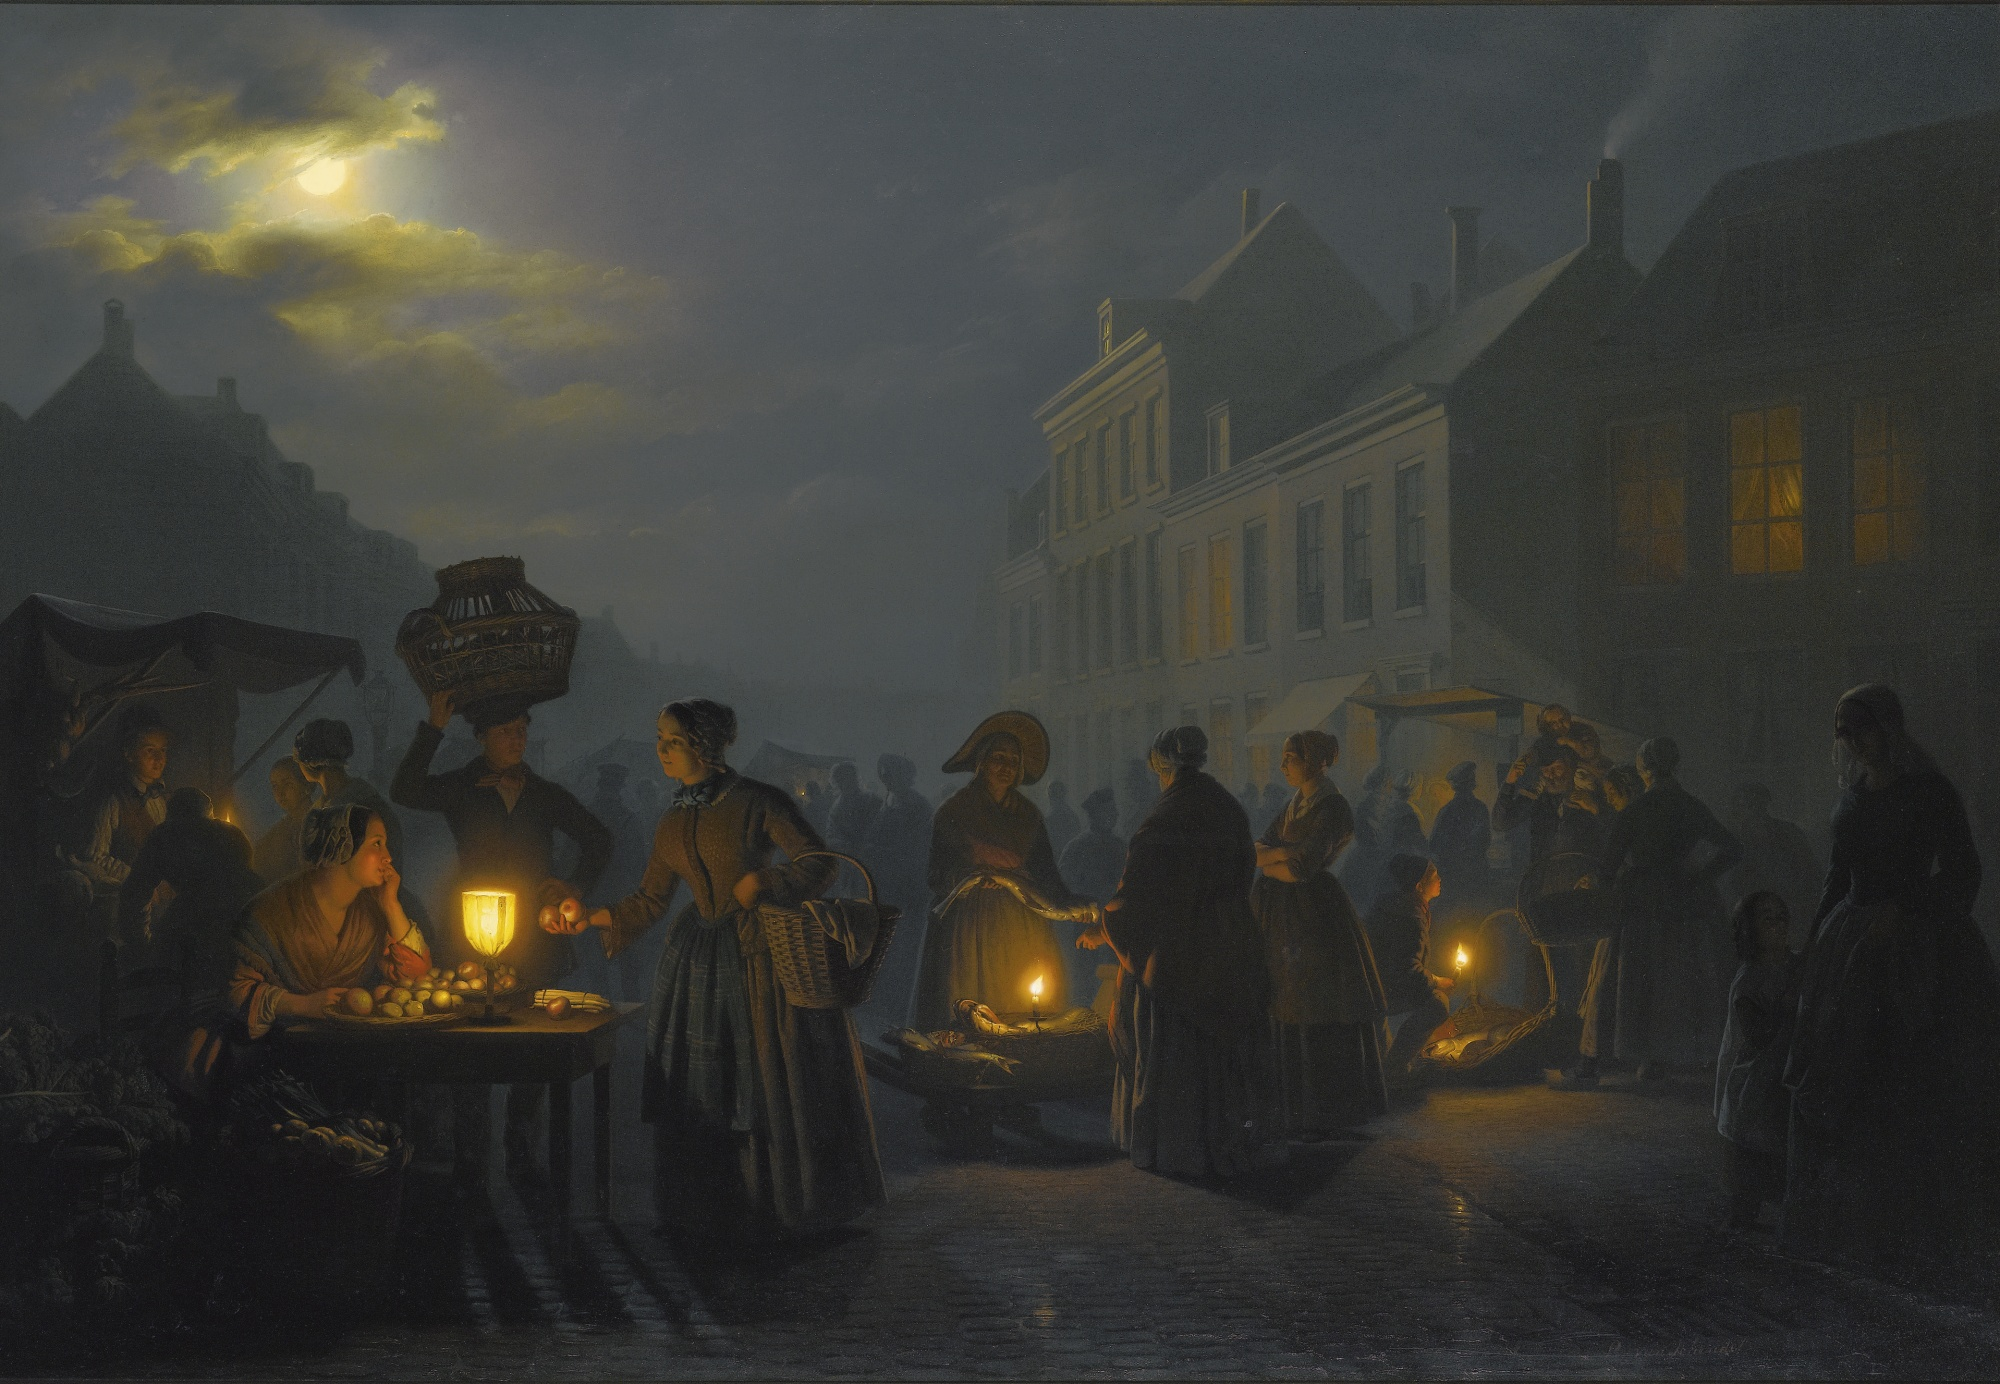 A Market at Dusk, by Petrus van Schendel